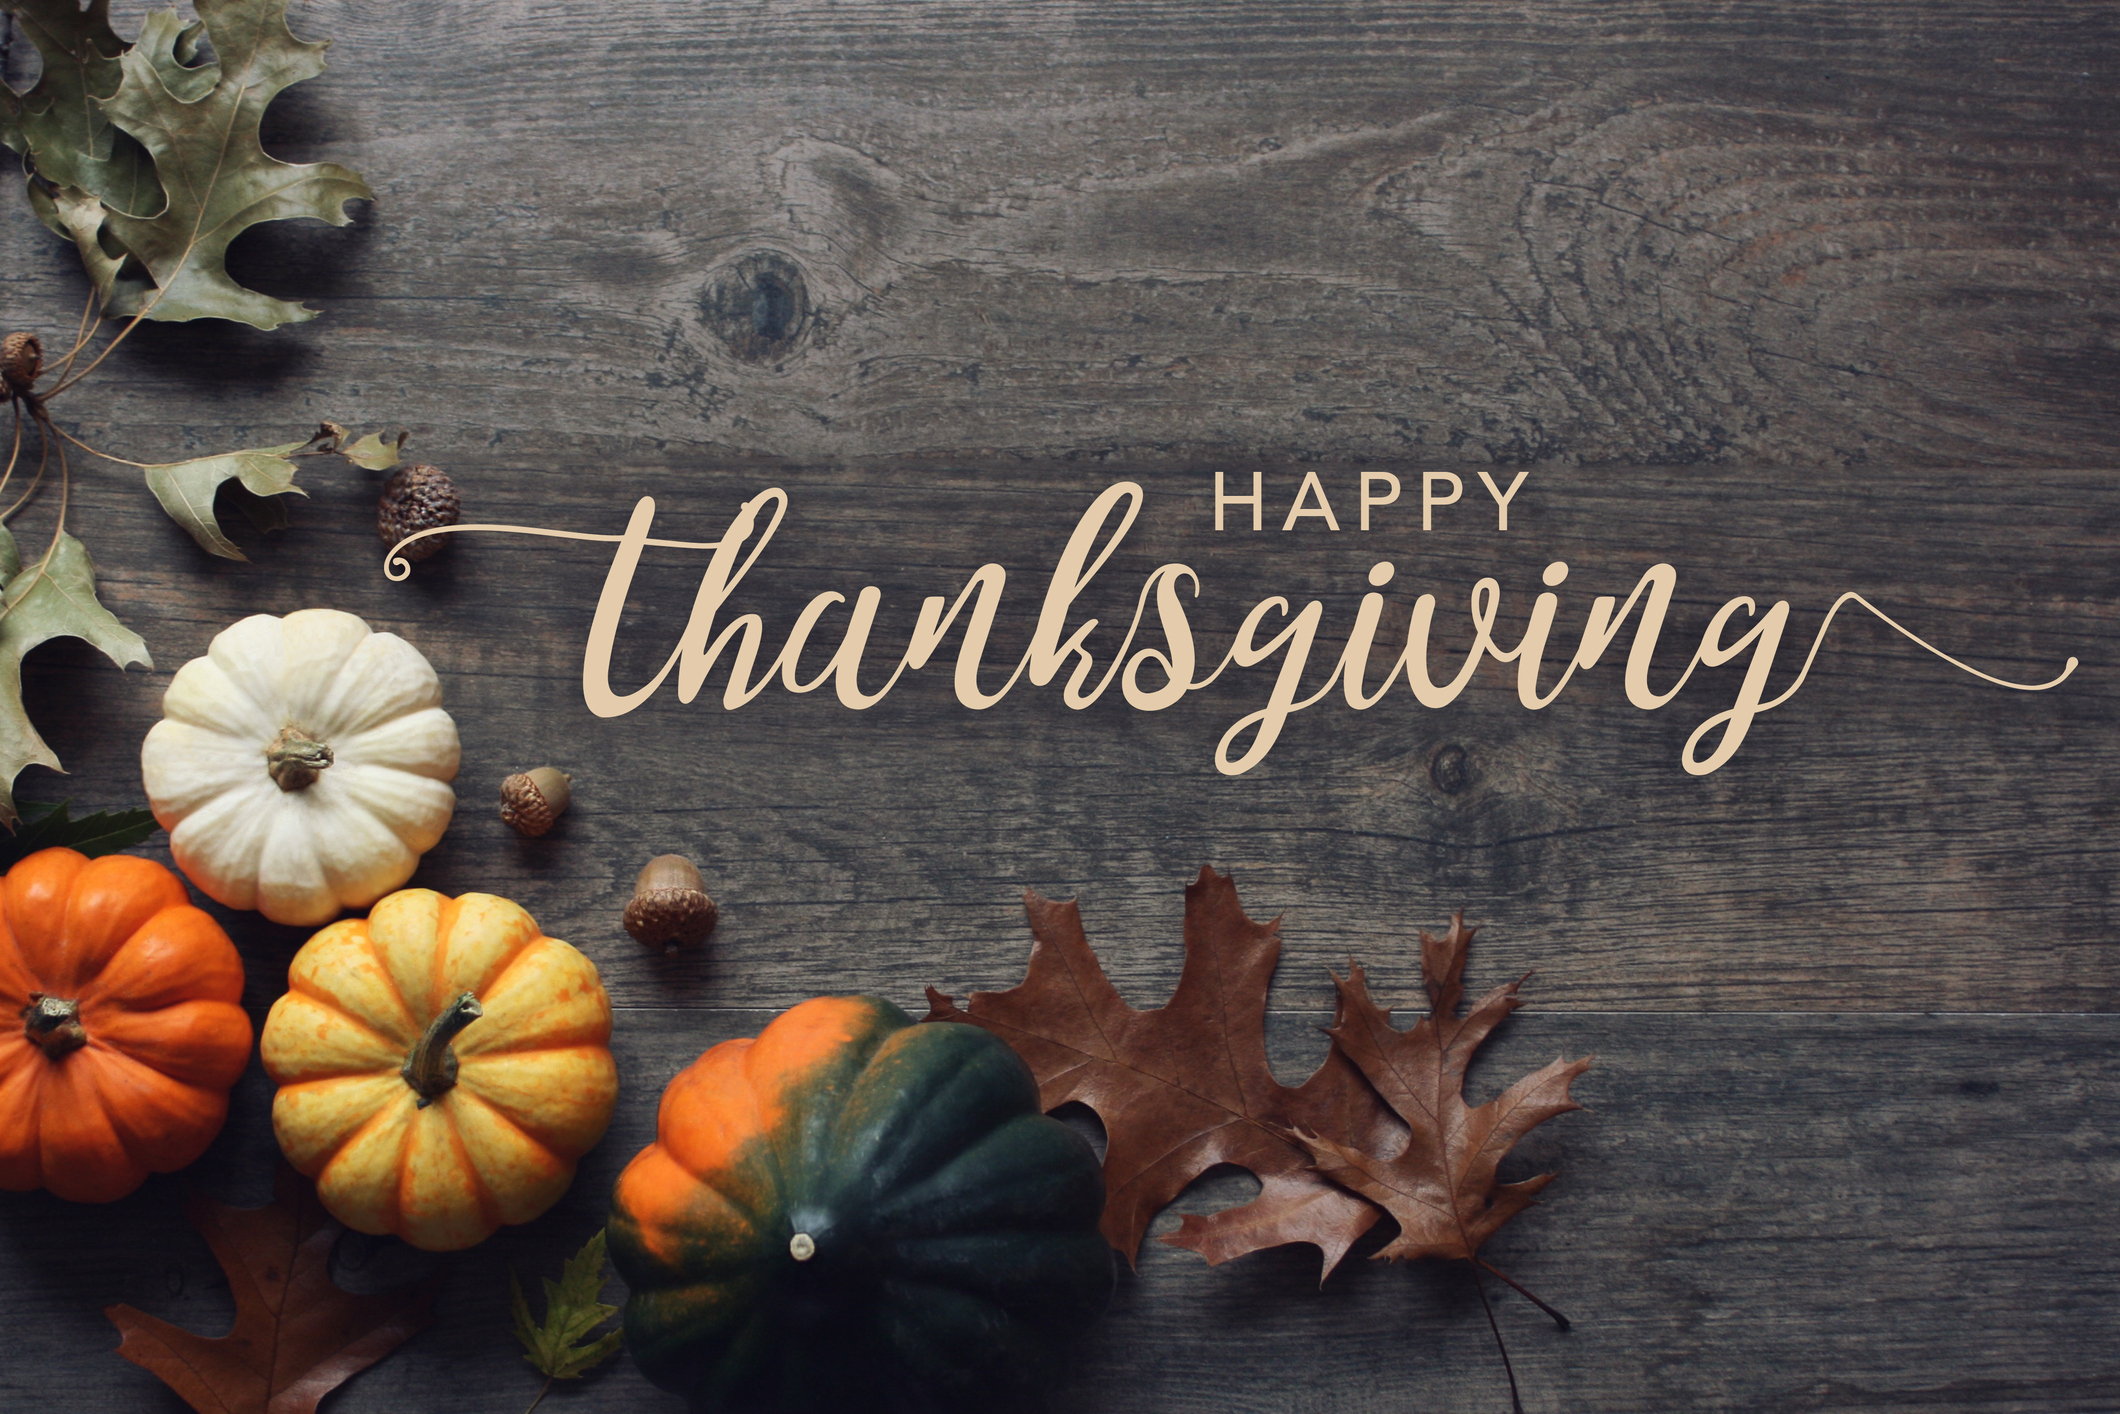 Happy Thanksgiving greeting script with colorful pumpkins, squash and leaves over dark wooden background